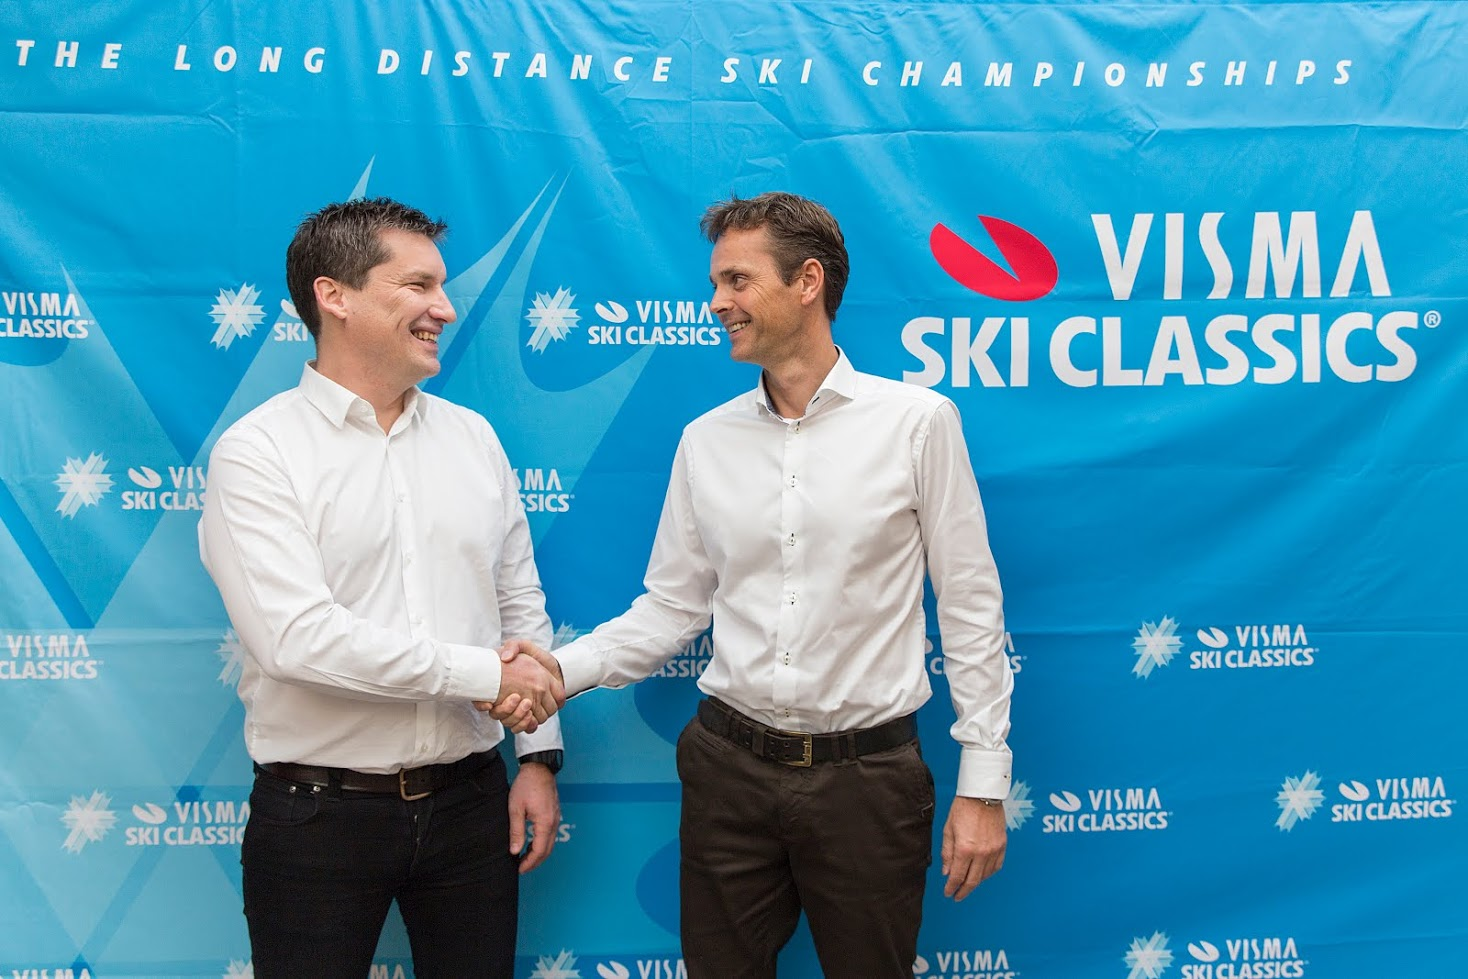 Visma Ski Classics - the long distance championship featuring Birken, Vasaloppet, Marcialonga and 7 other prestigious races